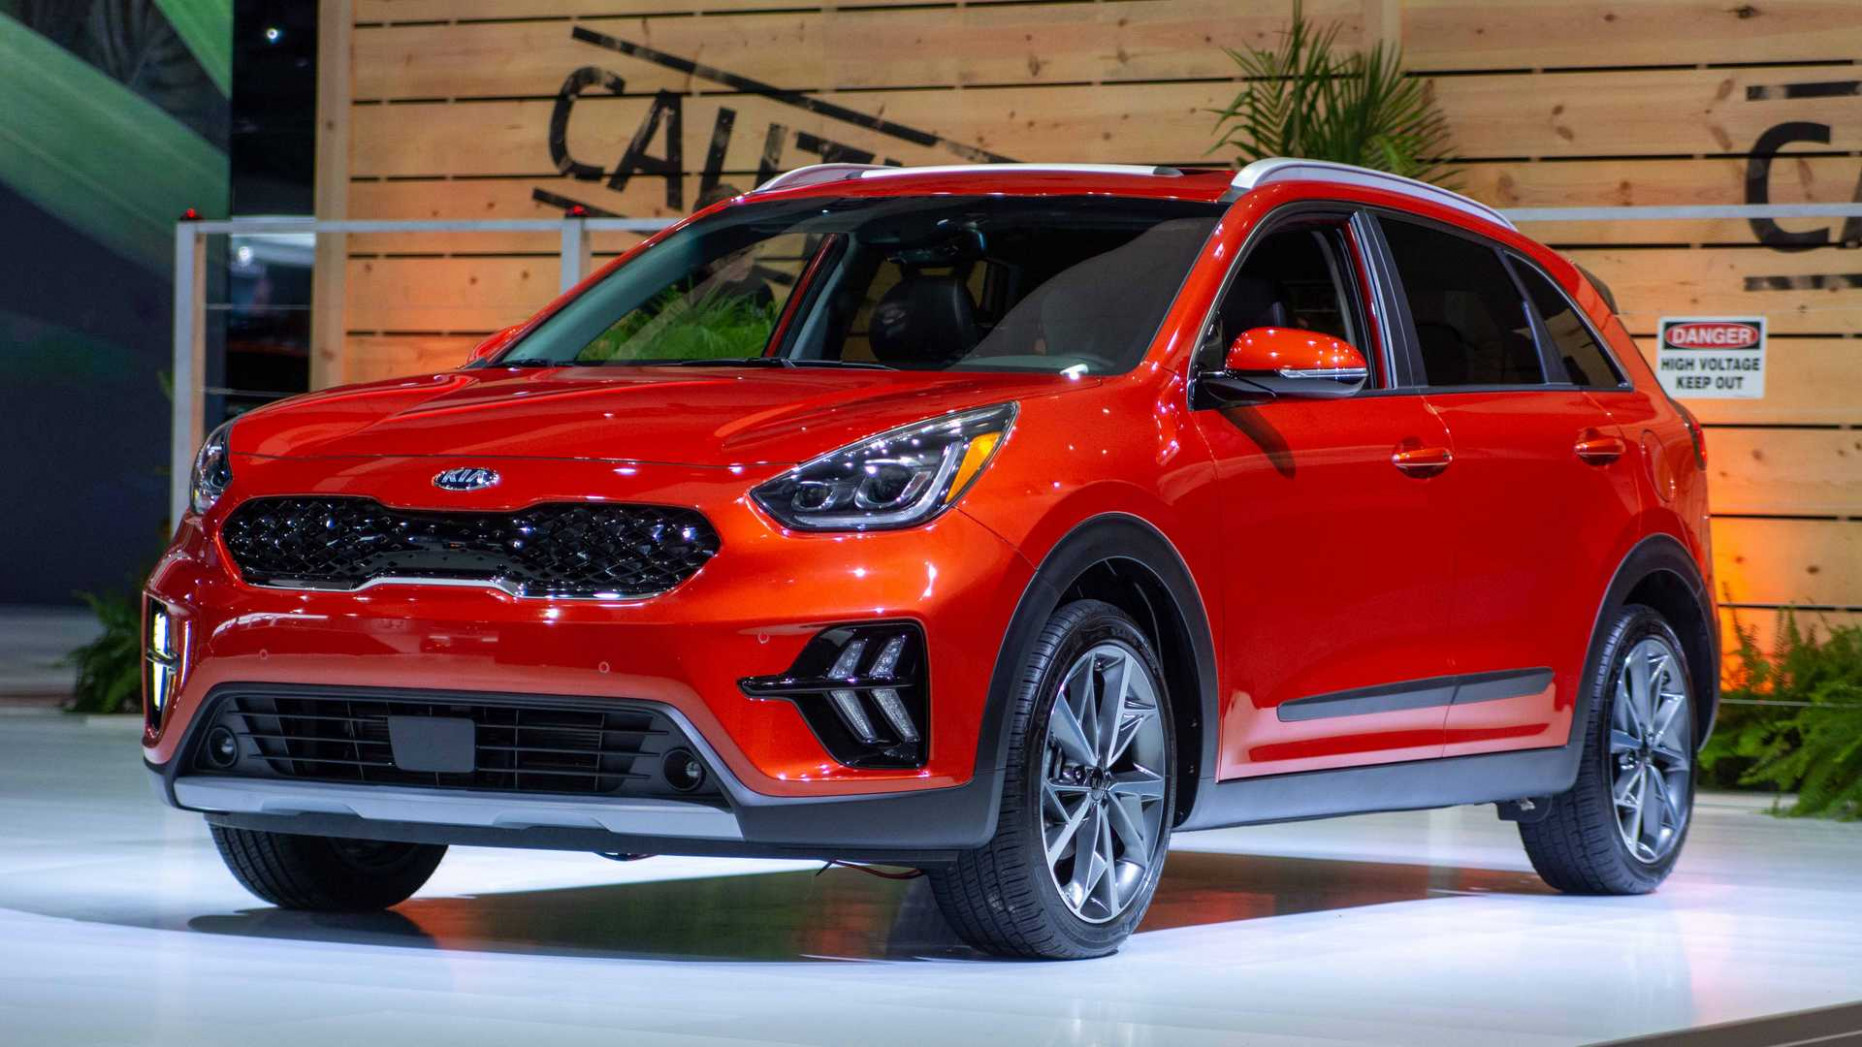 6 Kia Niro Arrives With Fresh Face And Bigger Screens Inside